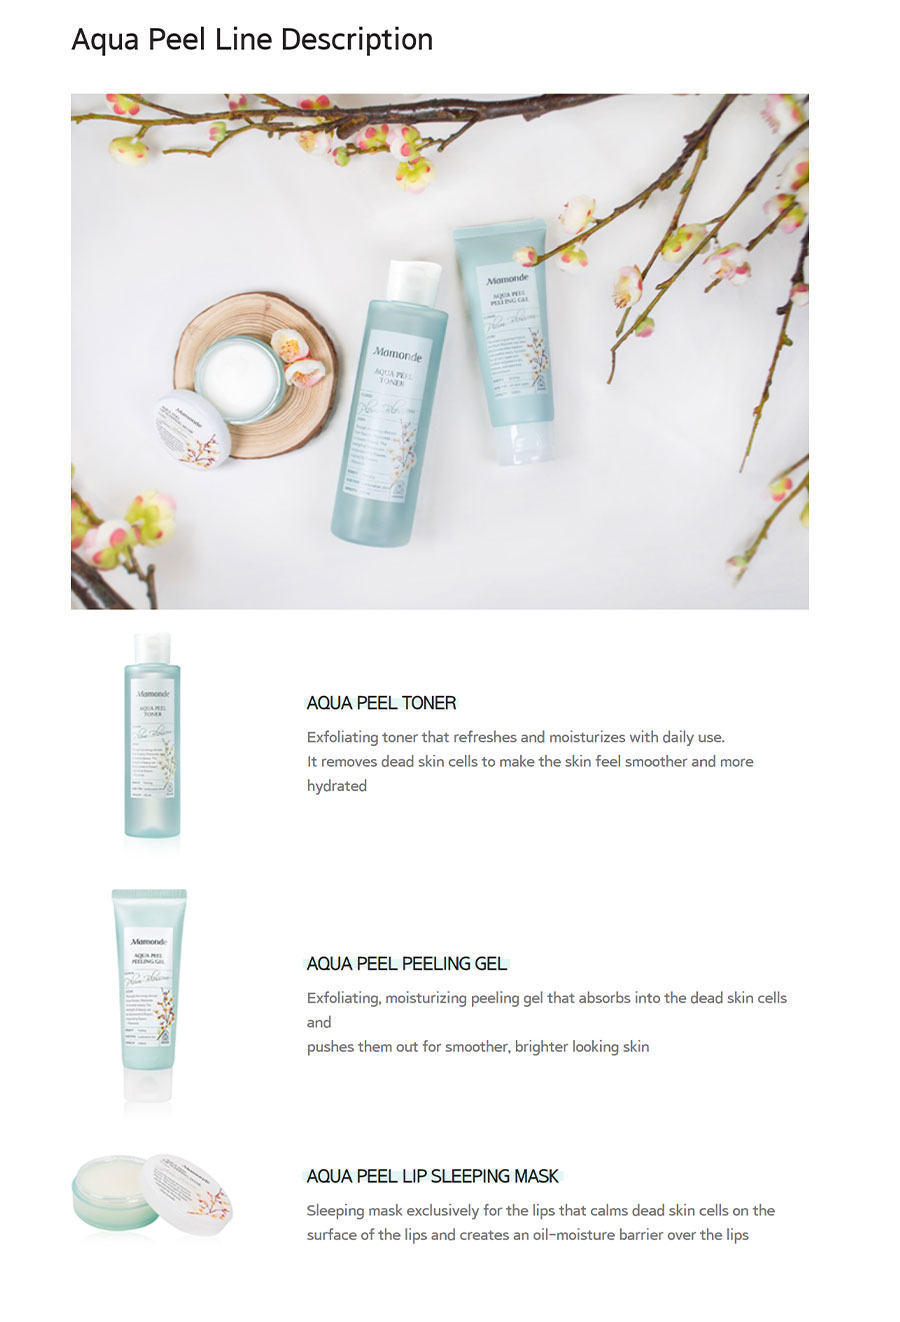 Aqua Peel Peeling Gel - Description